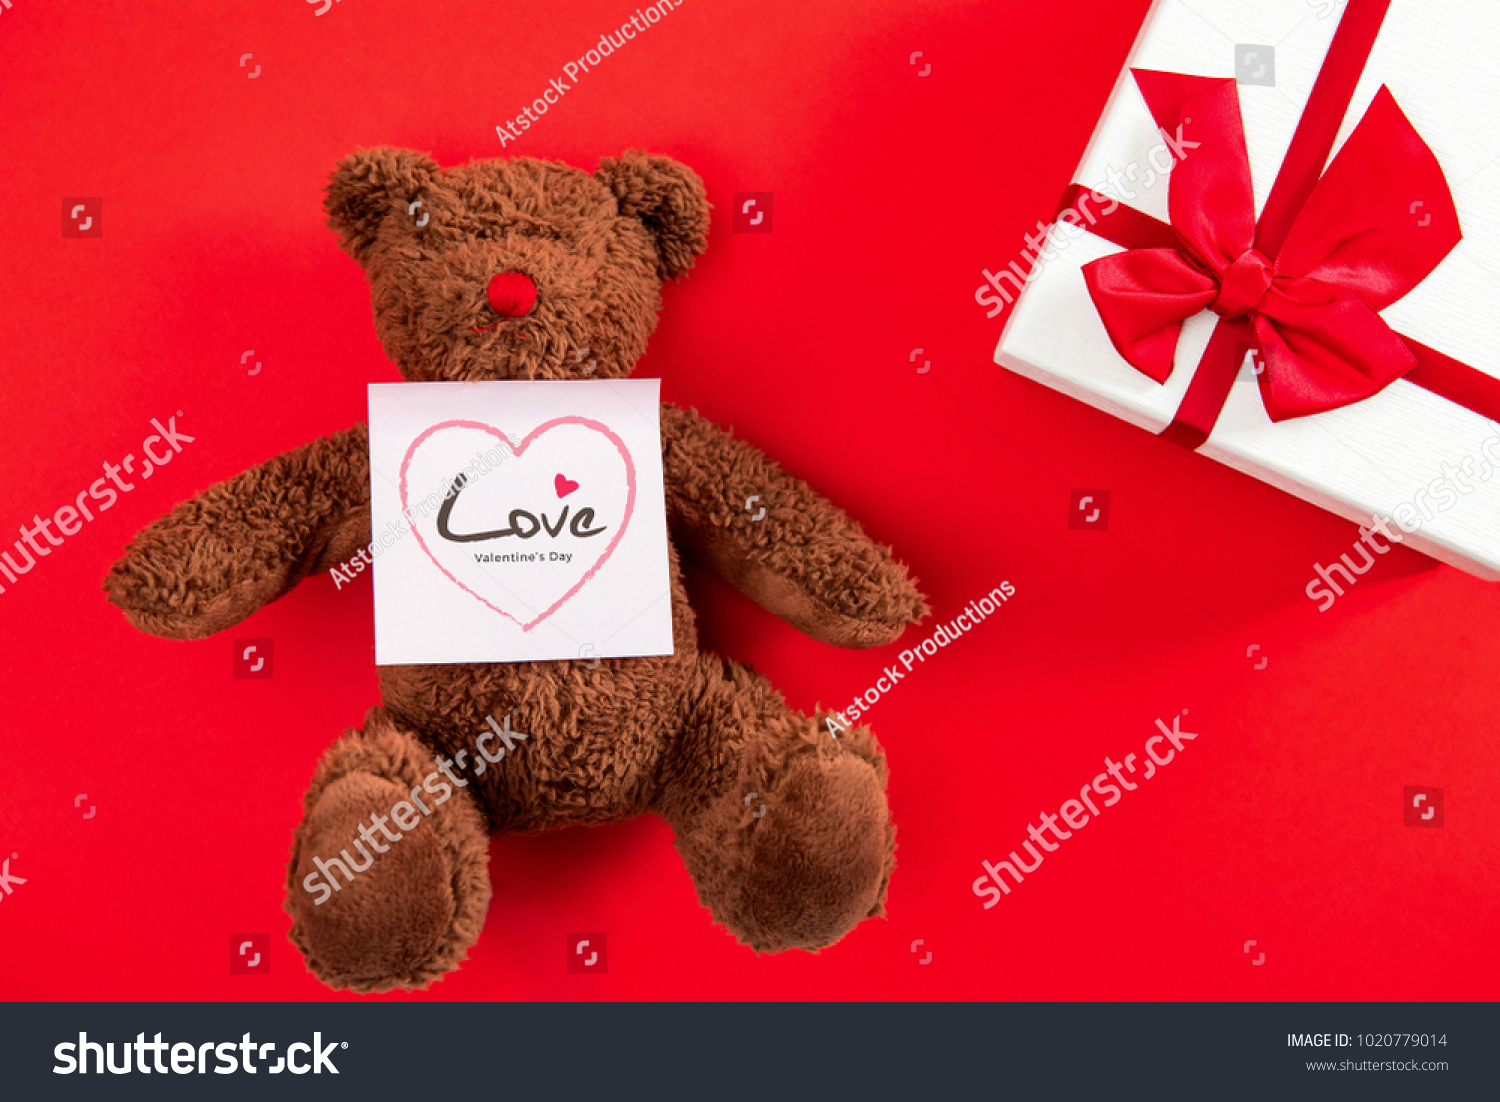 Valentines Day Gift Box Cute Bear Royalty Free Stock Image